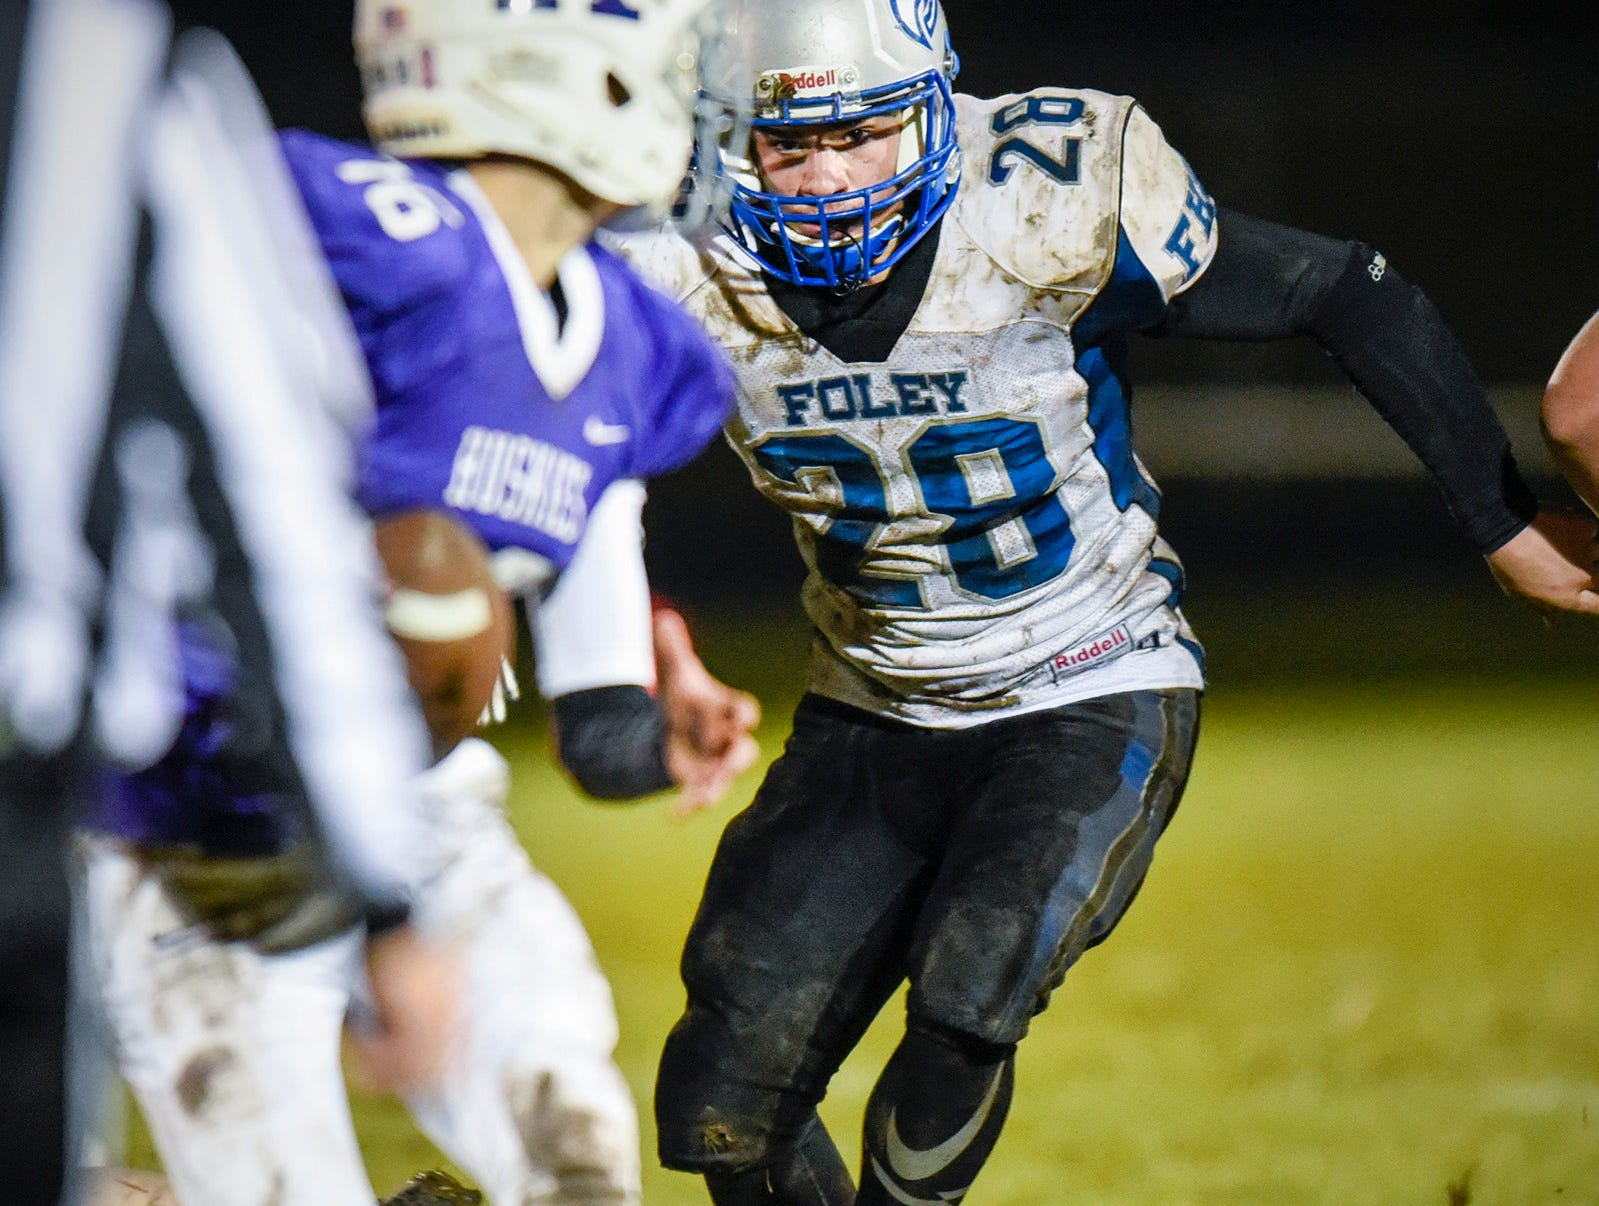 Foley's Max Lefebvre aims for Albany's quarterback during the first half Friday, Oct. 12, in Albany.